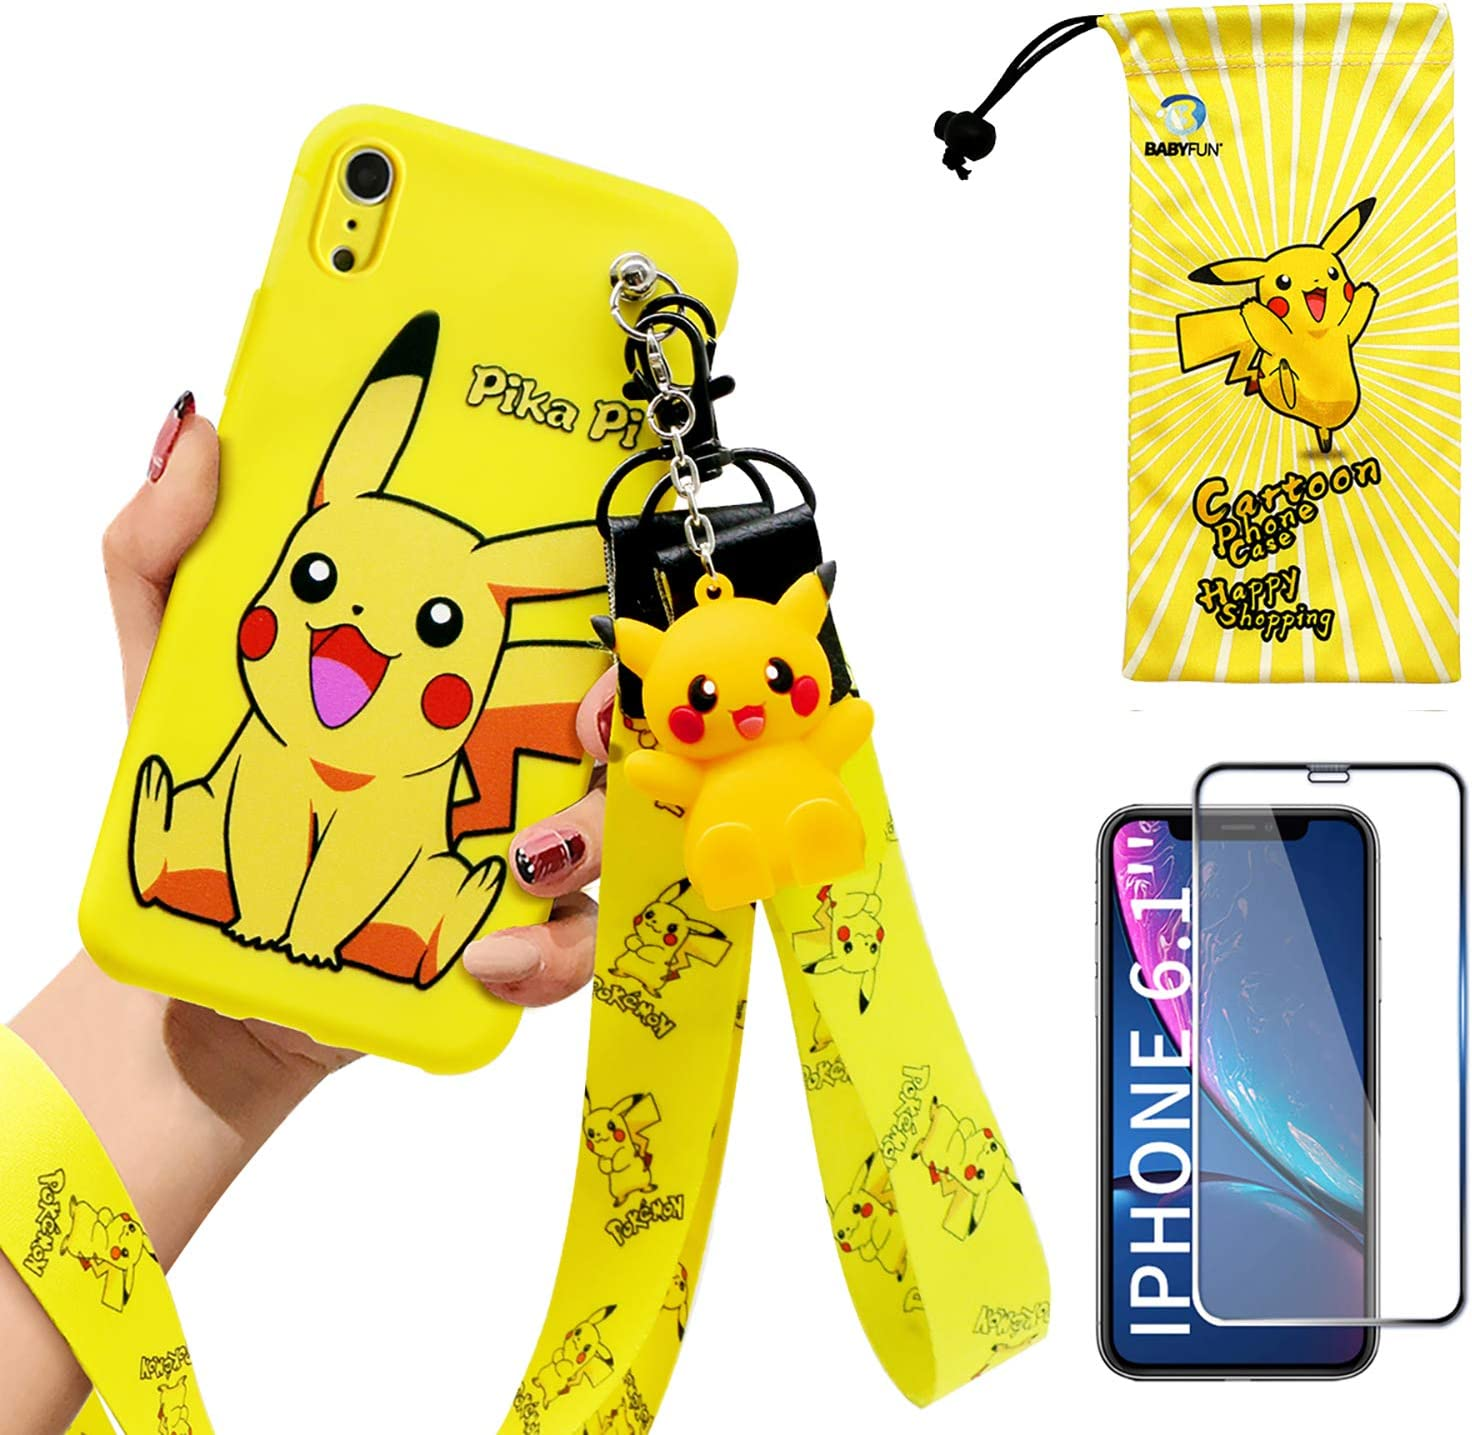 """iPhone XR case with HD Screen Protector, Cute Pikachu Cartoon Anime 3D Character Silicone Cover Case for Apple iPhone XR 6.1"""" with 2 Lanyard, 1 Cell Phone Stand, 1 Phone Storage Bag"""